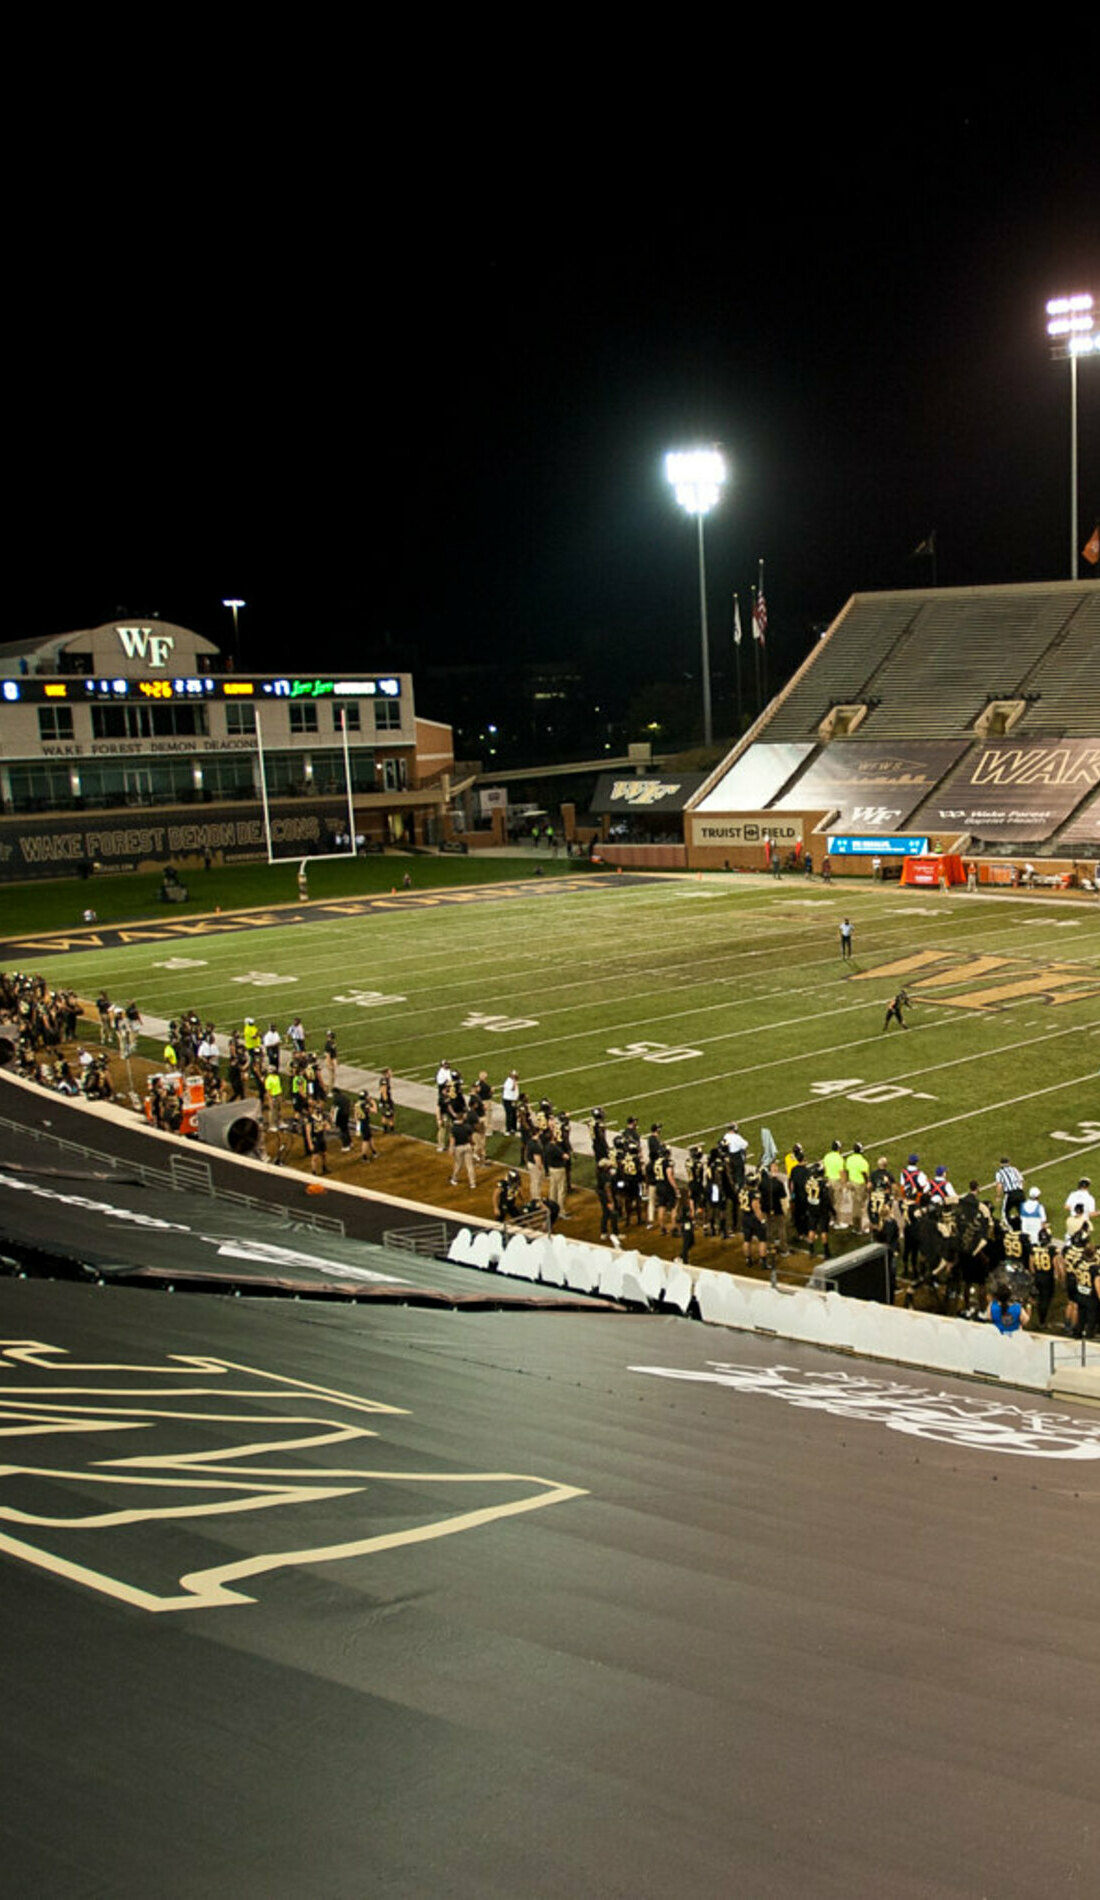 A Wake Forest Demon Deacons Football live event